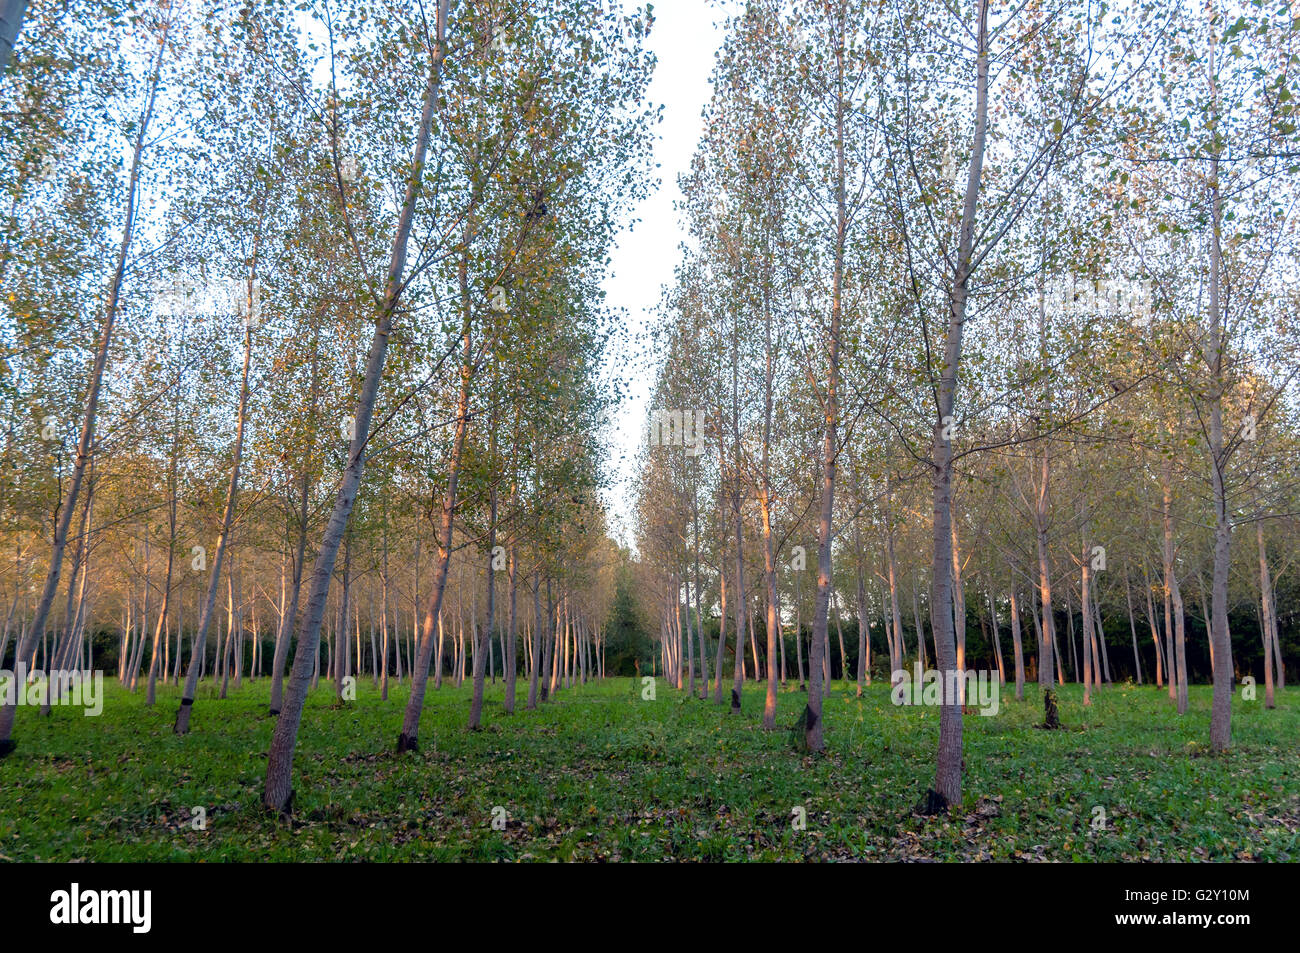 Soft evening light in a small plantation of plane trees in southwestern France. - Stock Image